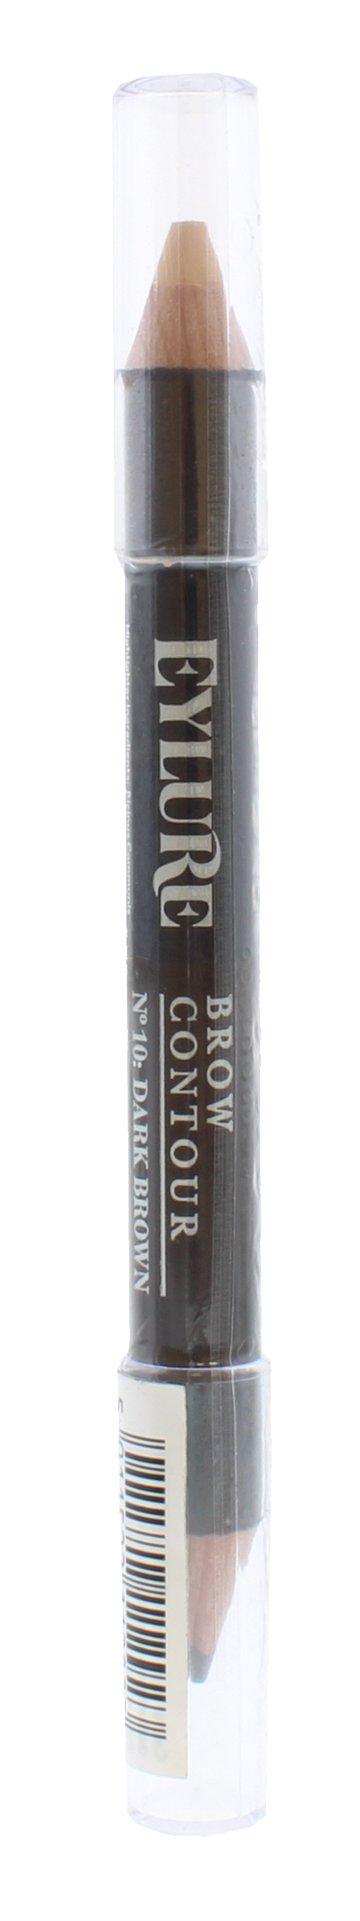 Eylure Brow Contour Duo Pencil Dark Brown